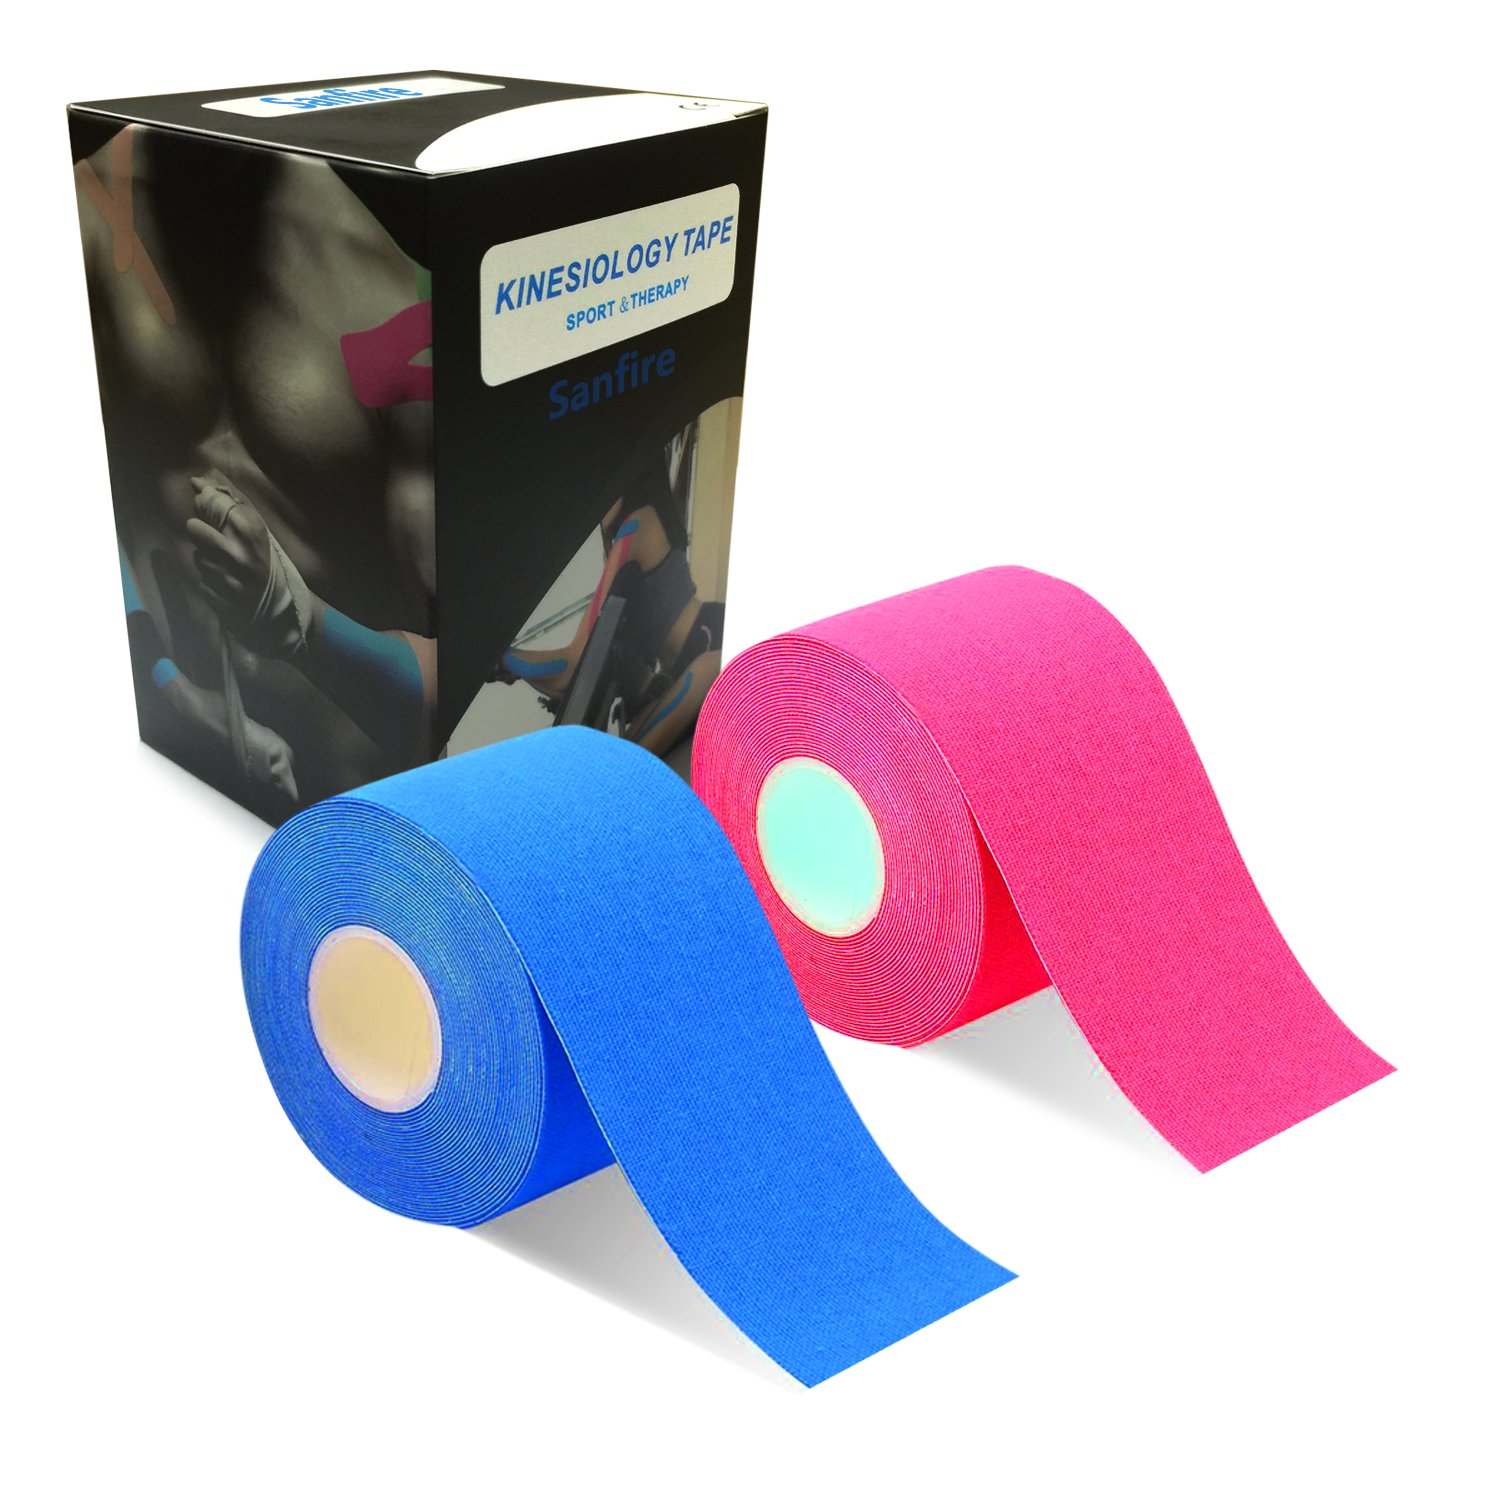 Sanfire Kinesiology Tape 2 Rolls Combo Pack for Athletic Sports, Recovery and PhysioTherapy FREE, Waterproof, Uncut, 2-Inch x 16.4-Feet